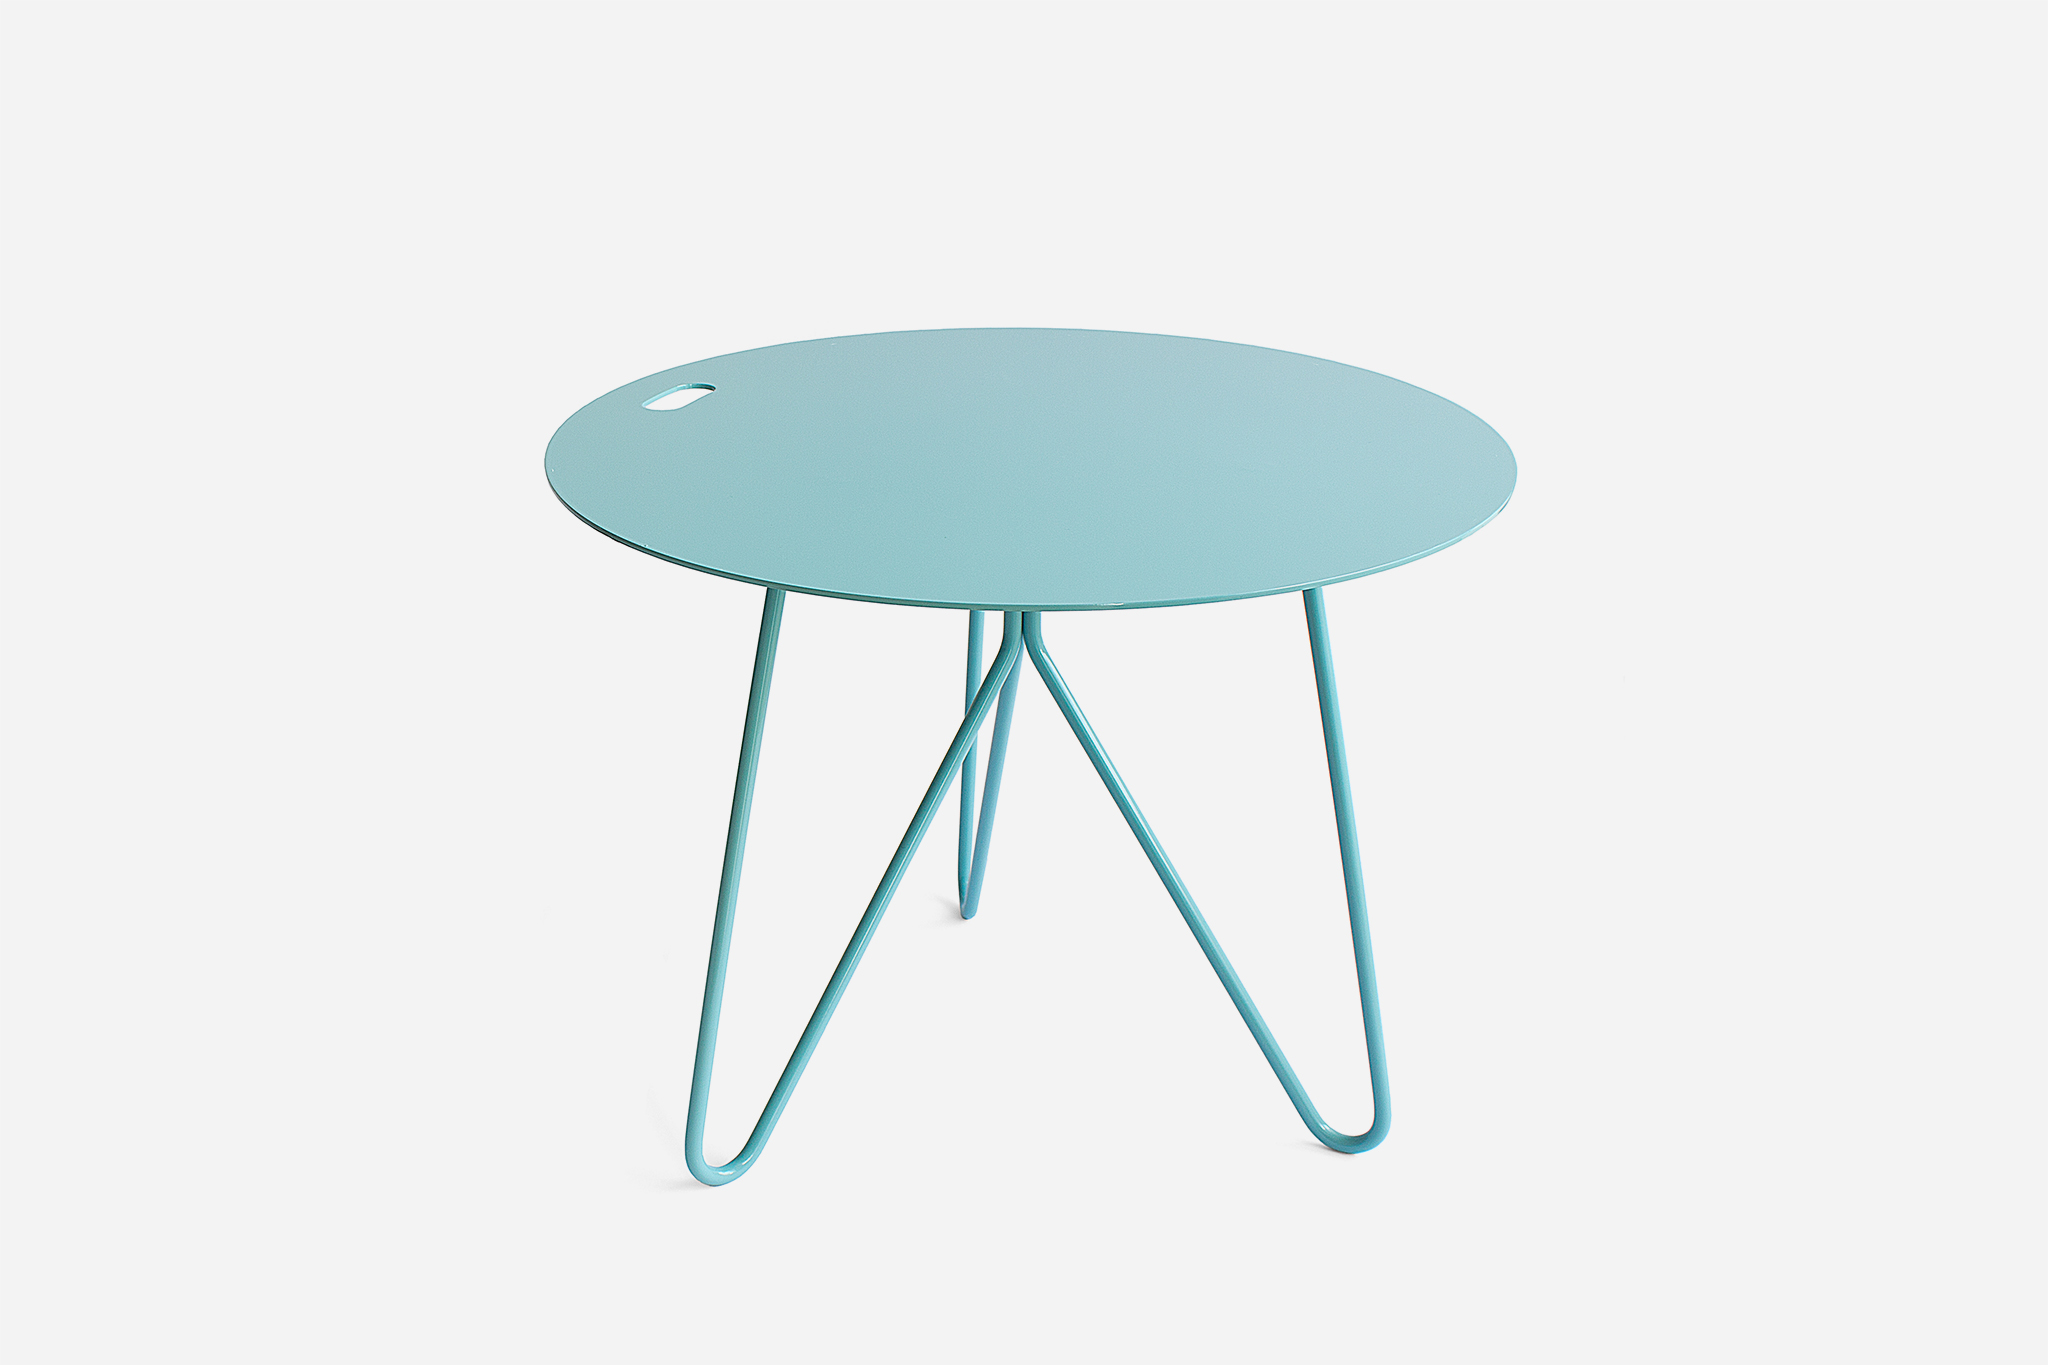 Galula Seis outdoor or in indoor table